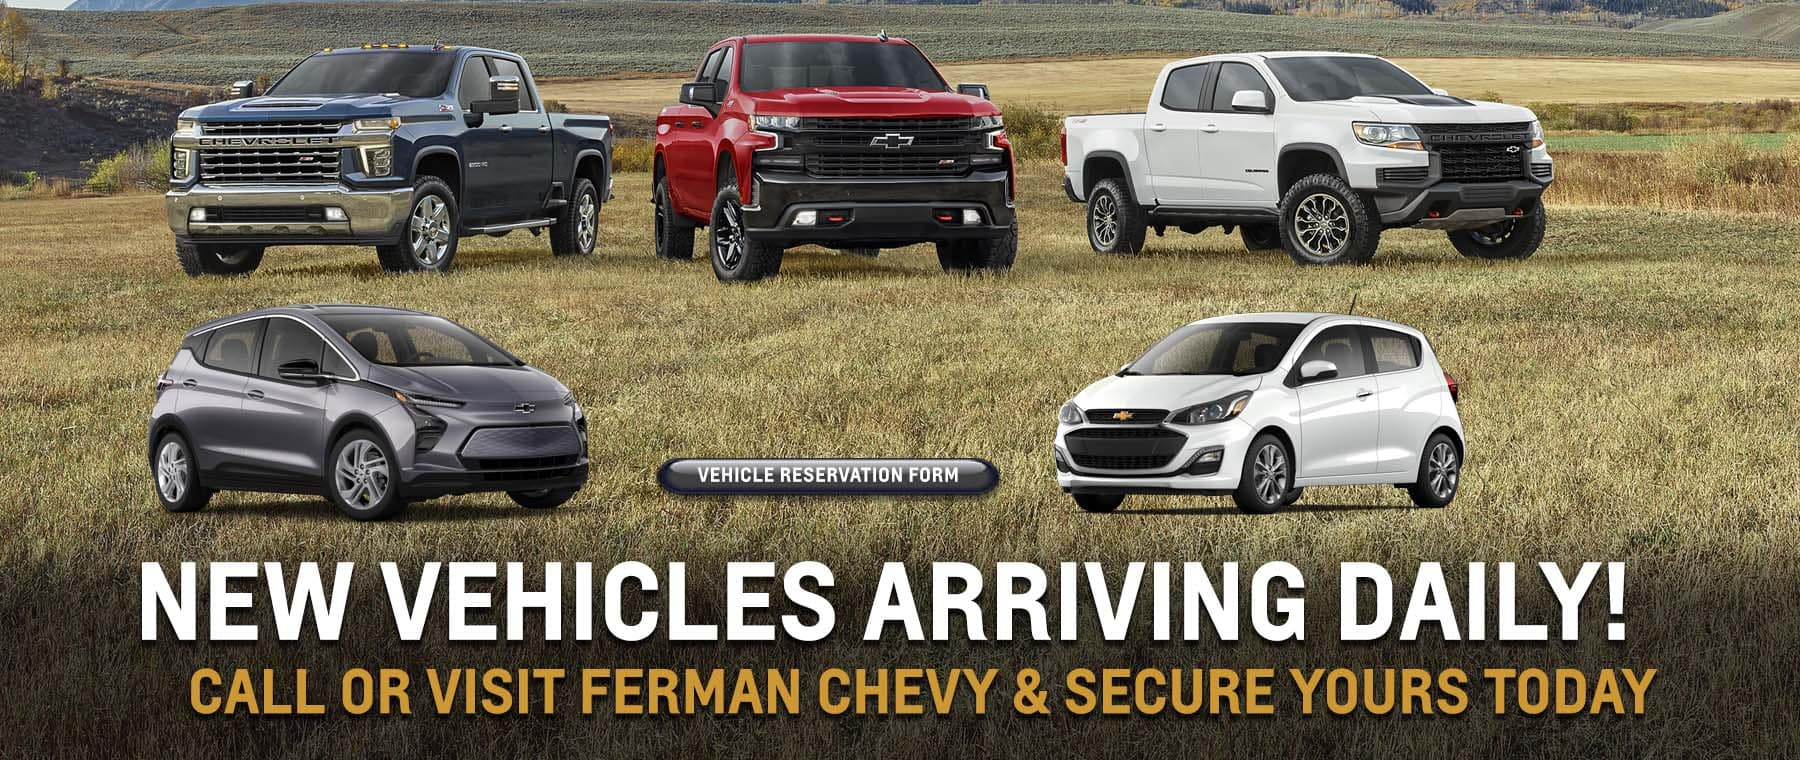 New Vehicles Arriving Daily! | Call or Visit Ferman Chevy of Tampa & Secure Yours Today